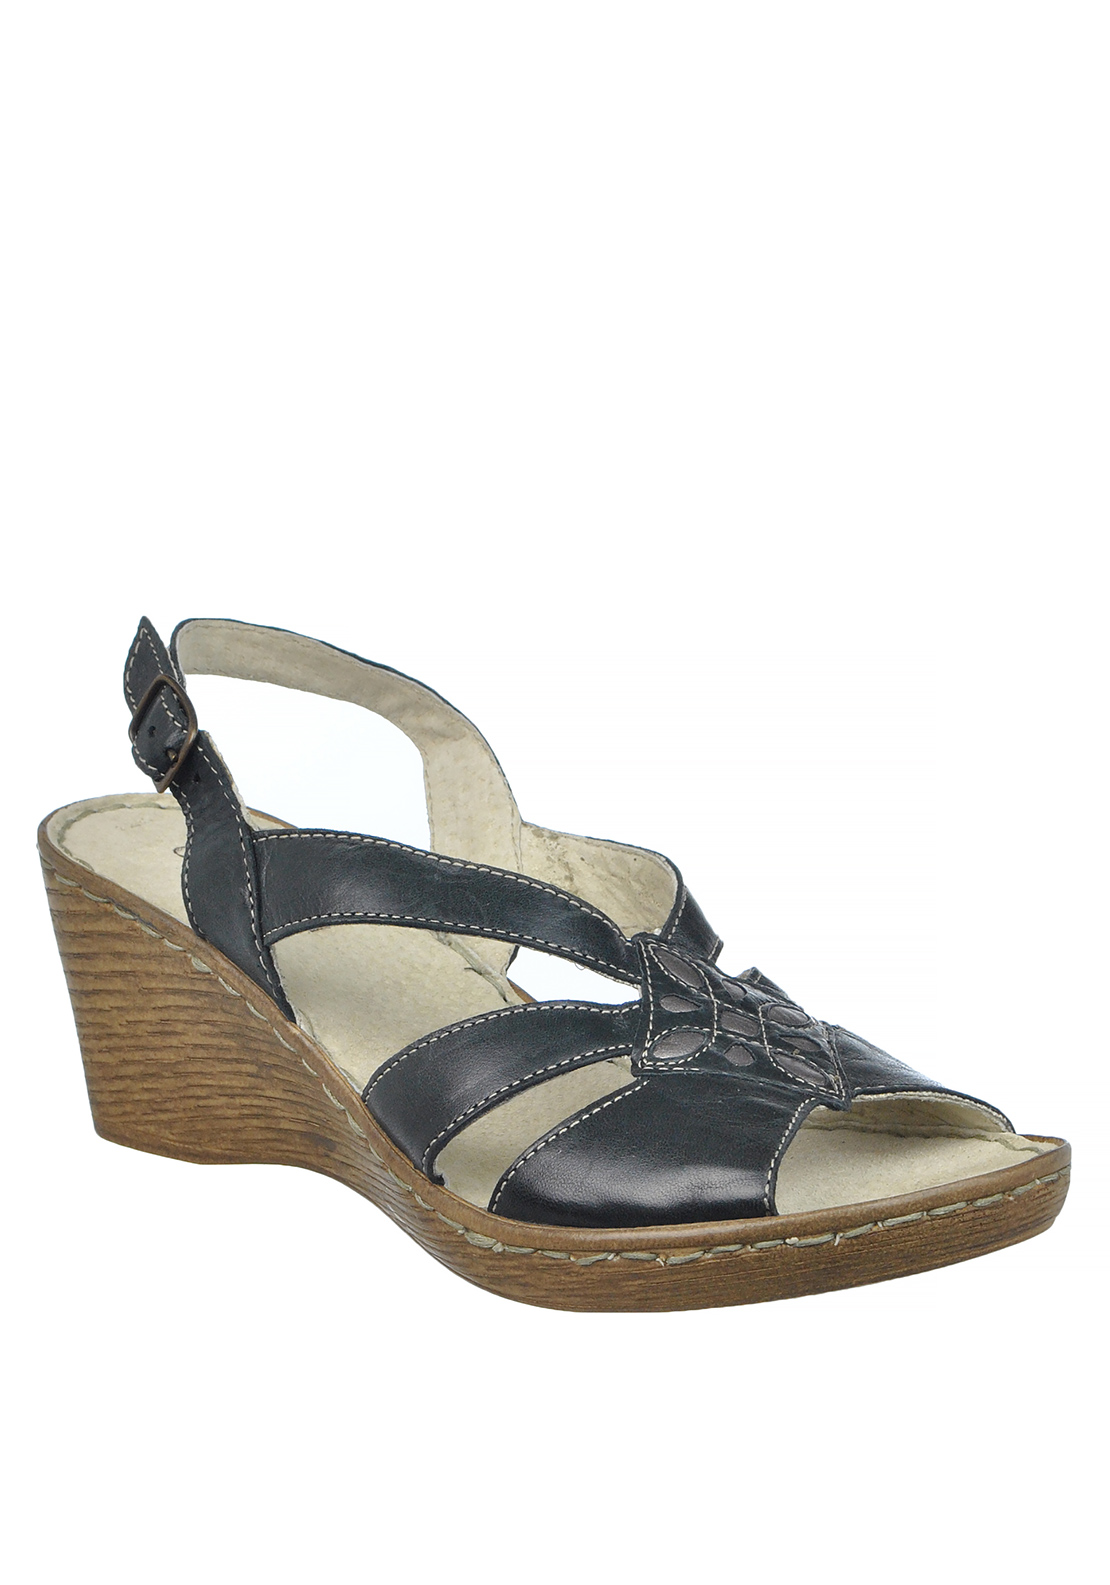 Dubarry Womens Marlon Wedged Sandals, Black